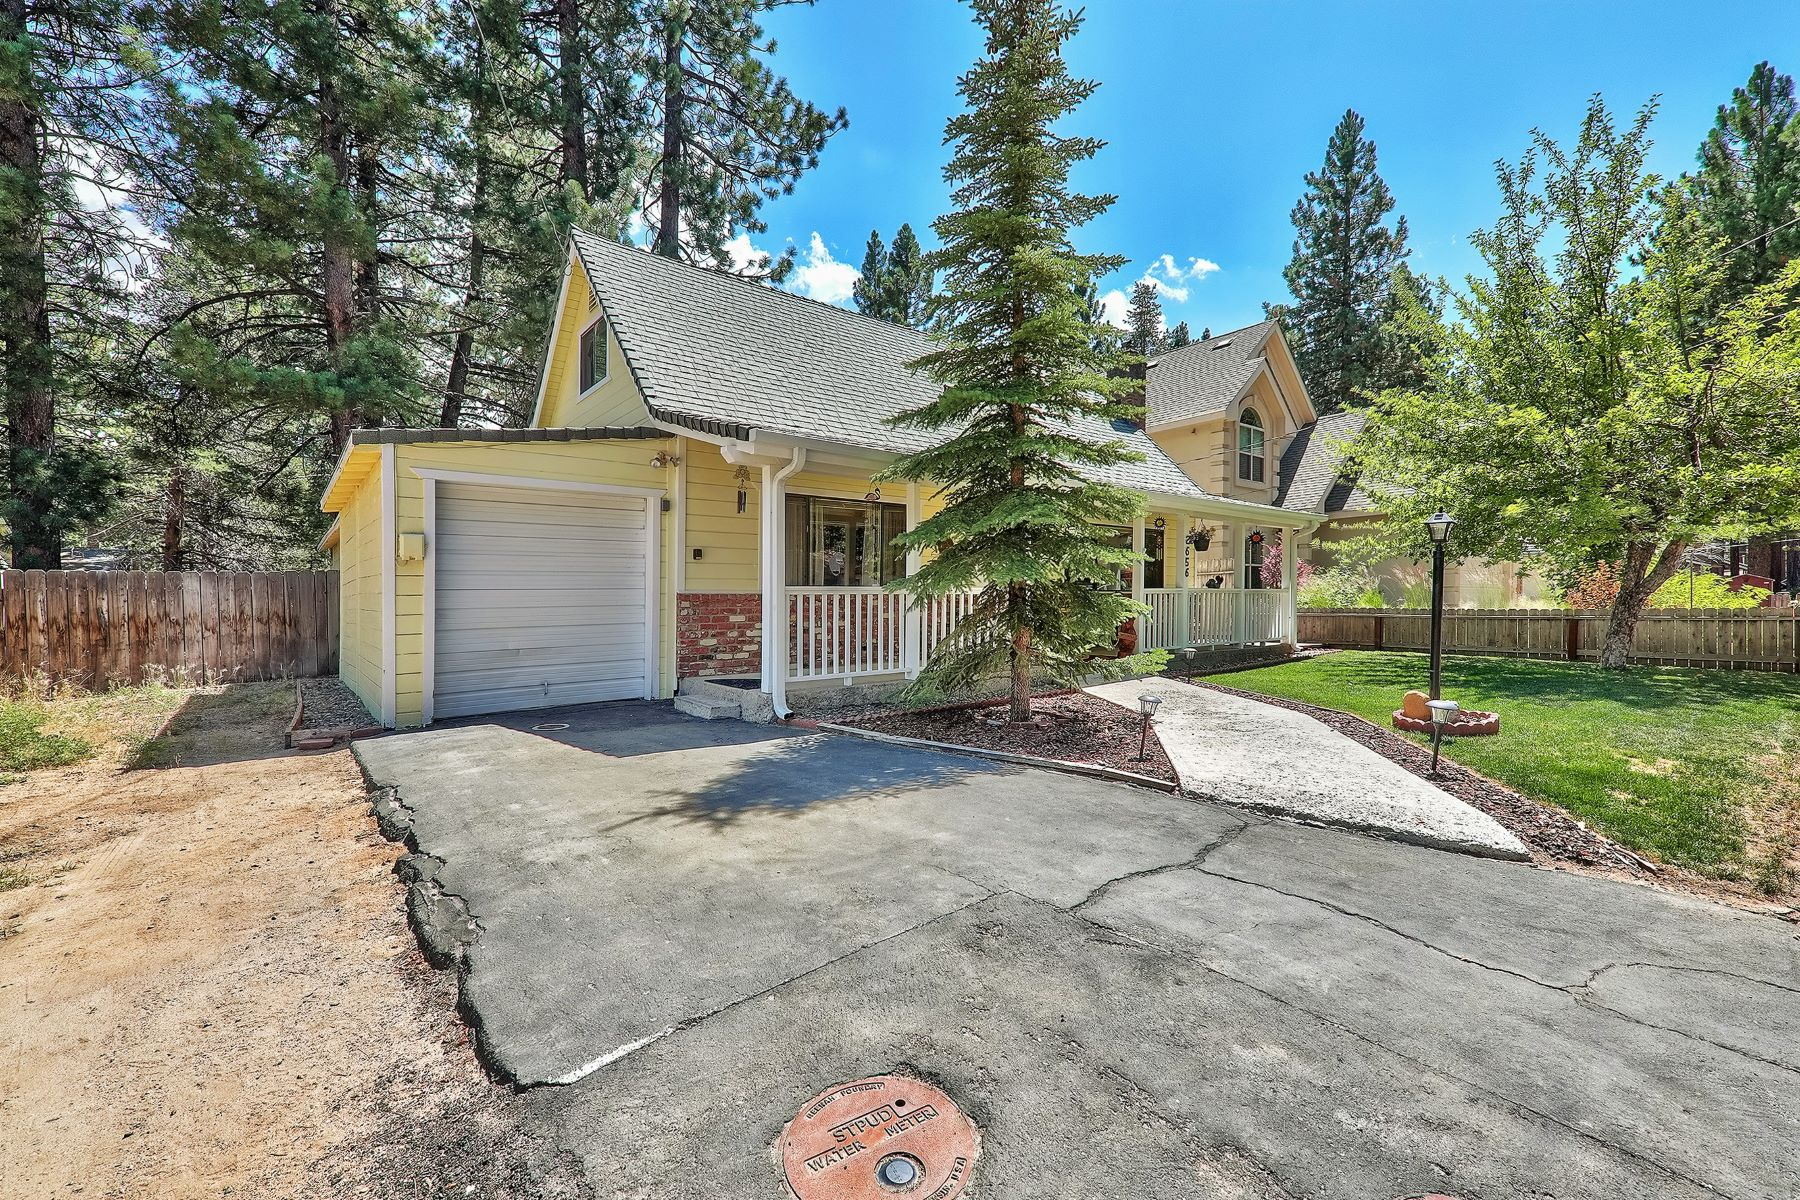 Additional photo for property listing at 2656 Rose Ave. South Lake Tahoe, CA 96150 2656 Rose Ave. South Lake Tahoe, California 96150 United States